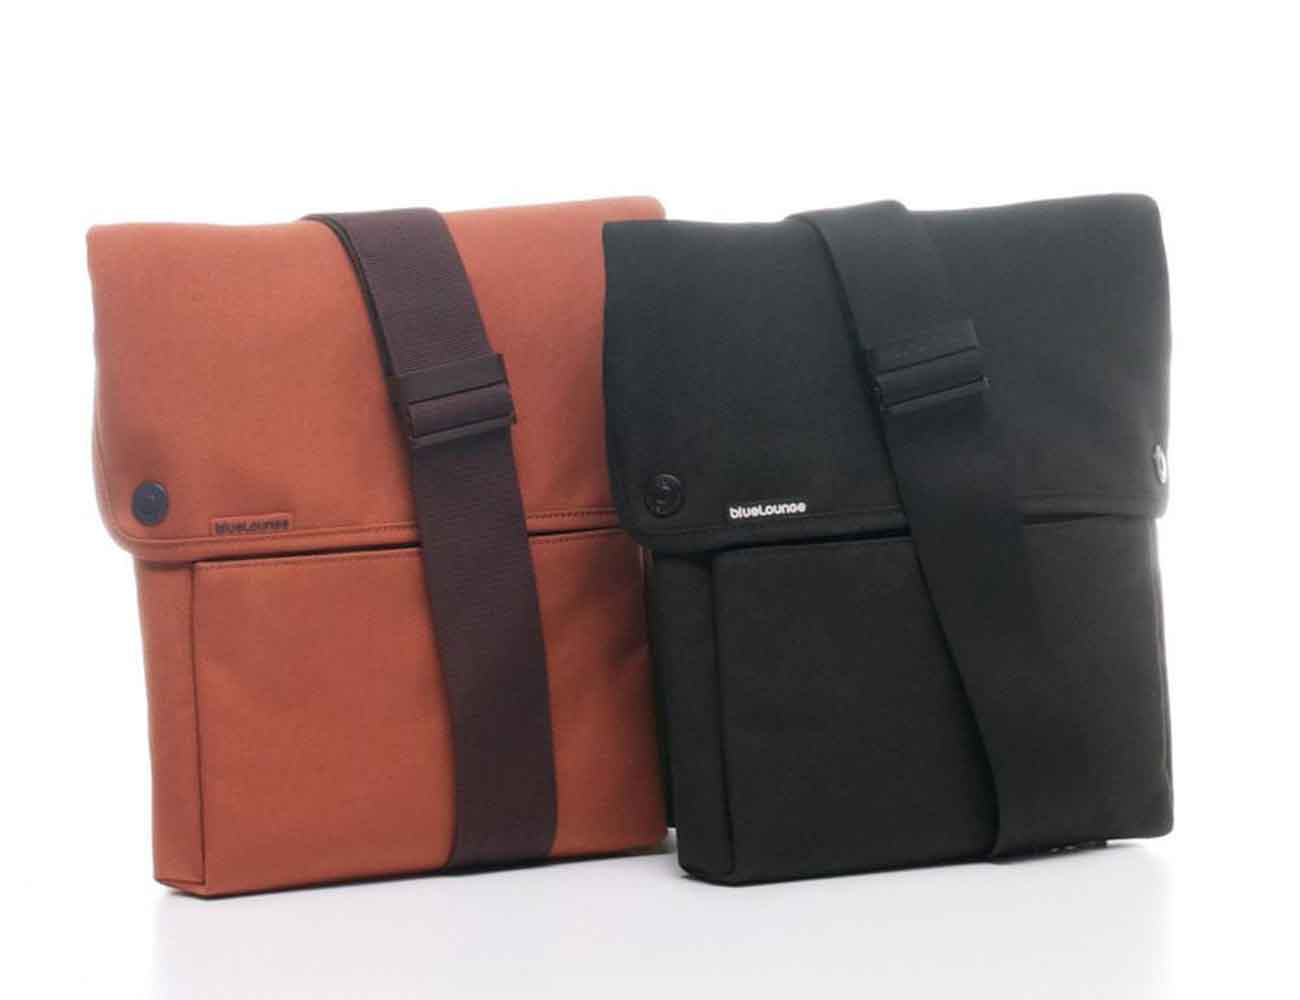 iPad Sling Bag by Bluelounge